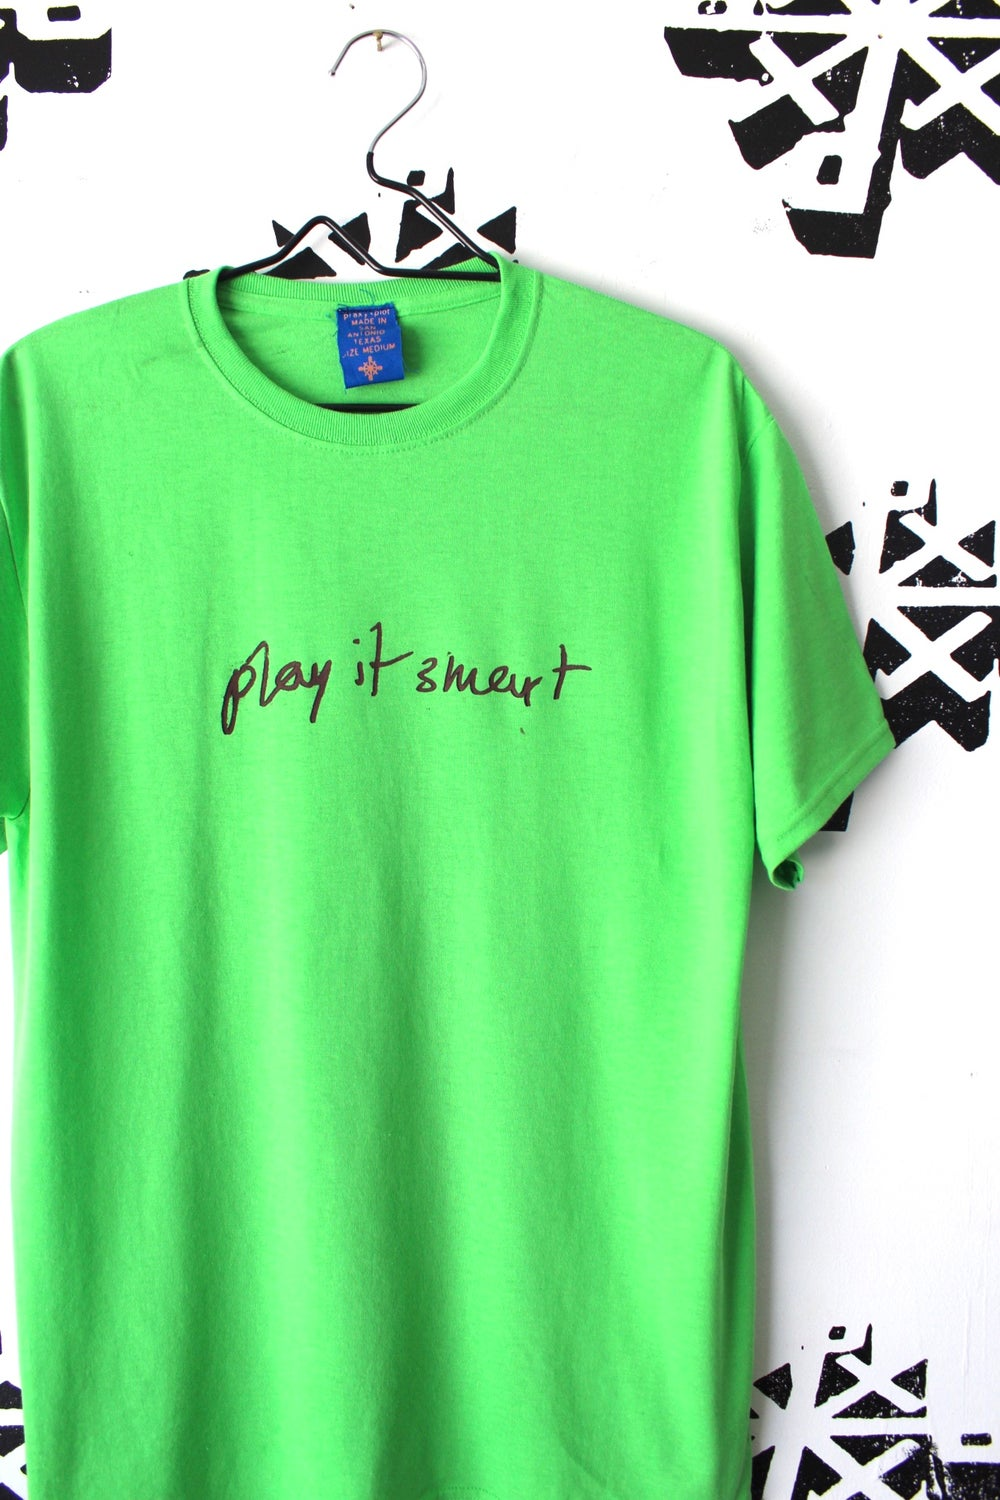 play it smart tee in bright green